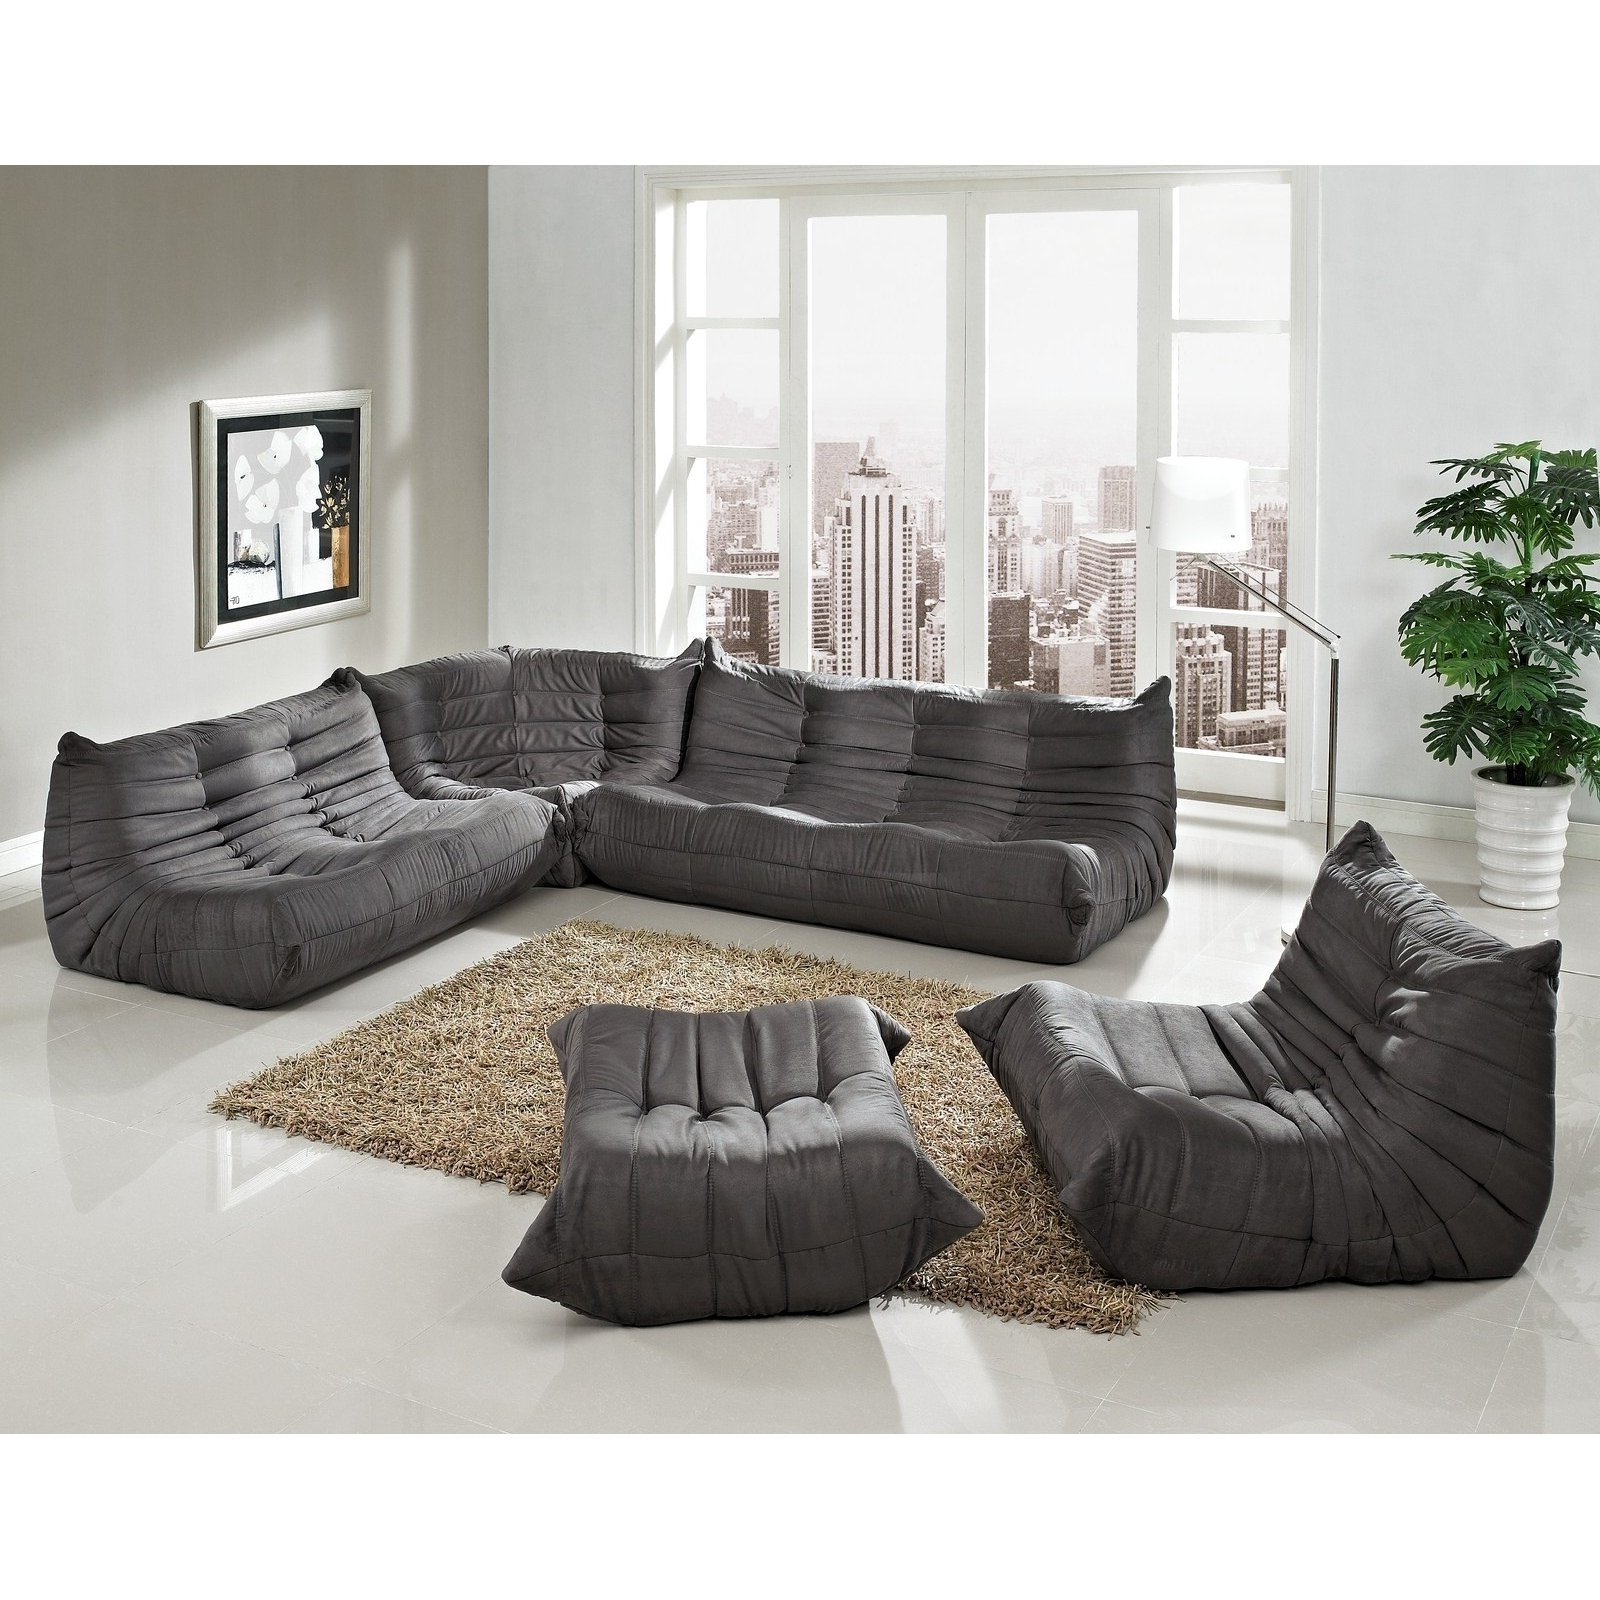 Low Sofas Regarding Most Recently Released Beautiful Low Profile Sectional Sofa 40 On Sofas And Couches Ideas (View 10 of 20)